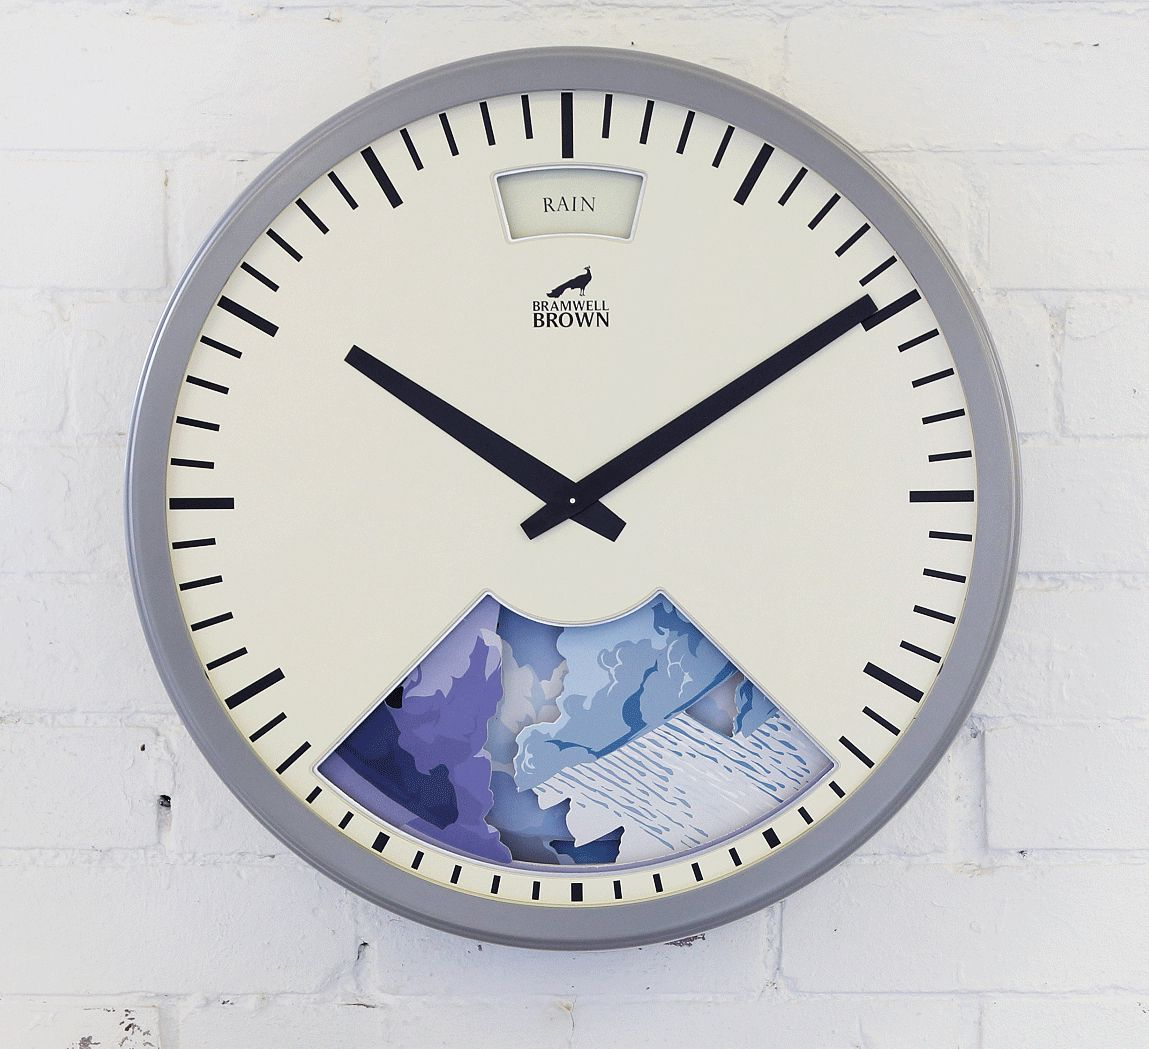 Home Accessories : Bramwell Brown Weather Clocks – Fawn. Country Luxe Living. Interior Design & Lifestyle Accessories.